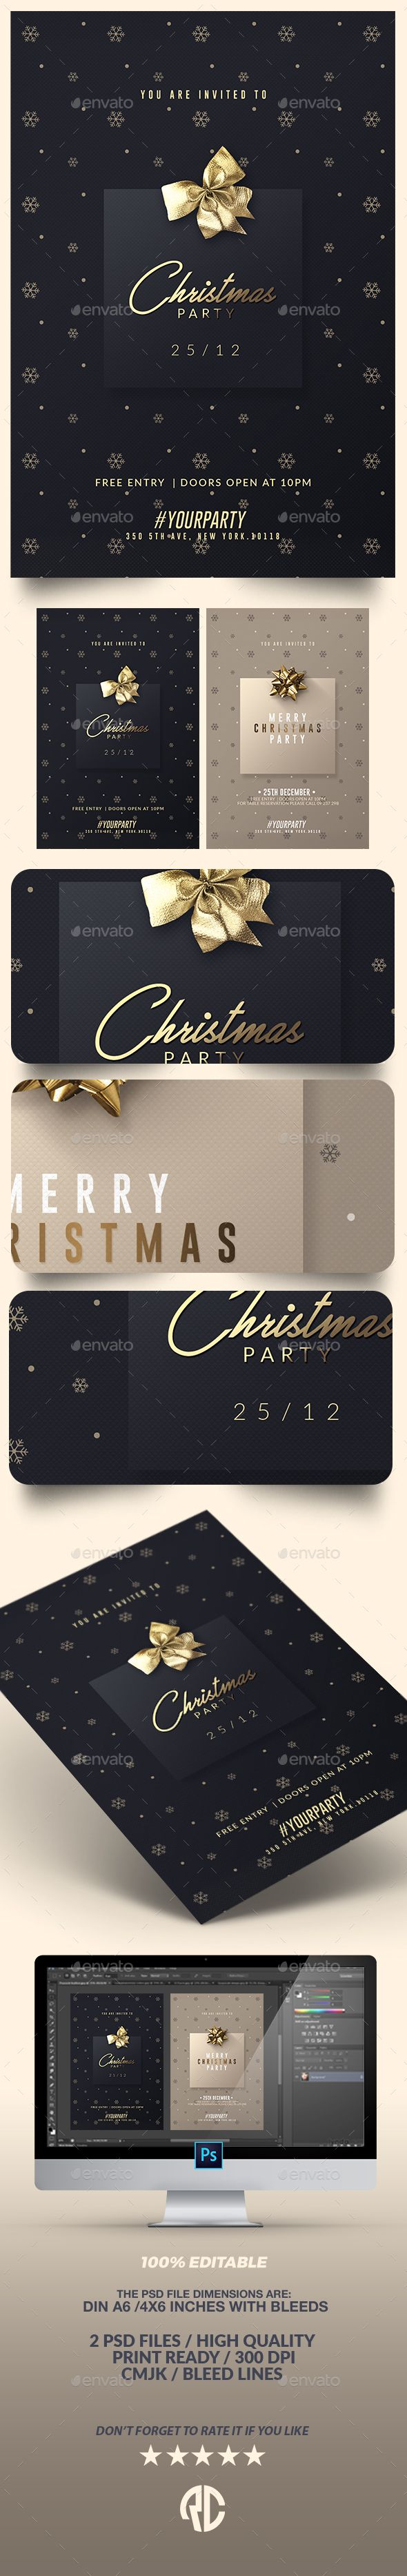 business event invitation templates%0A   Classy Christmas Party   Invitation Templates